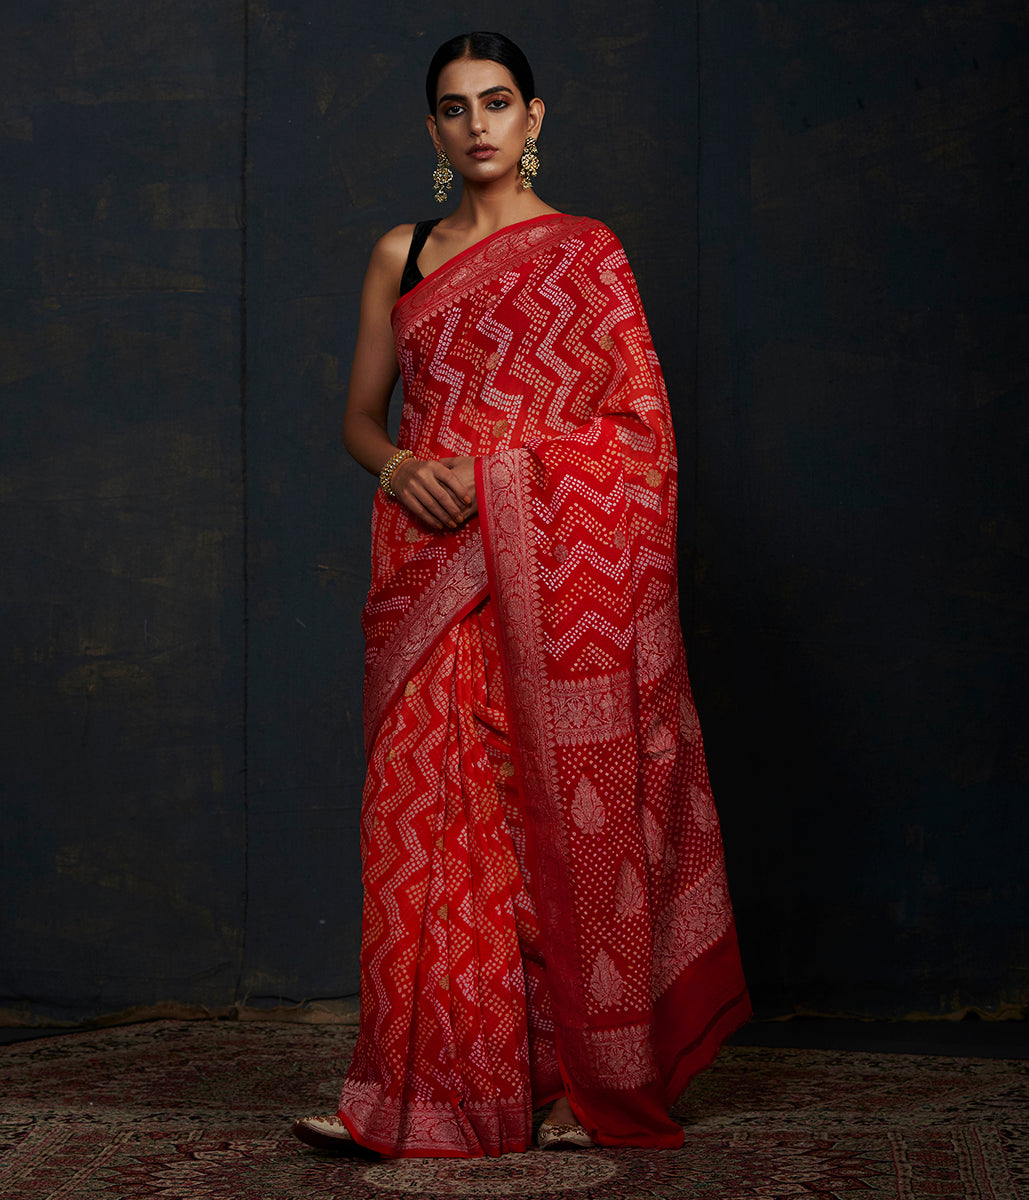 Red and orange ombré dyed Banarasi Bandhej Saree with chevron tie and dye